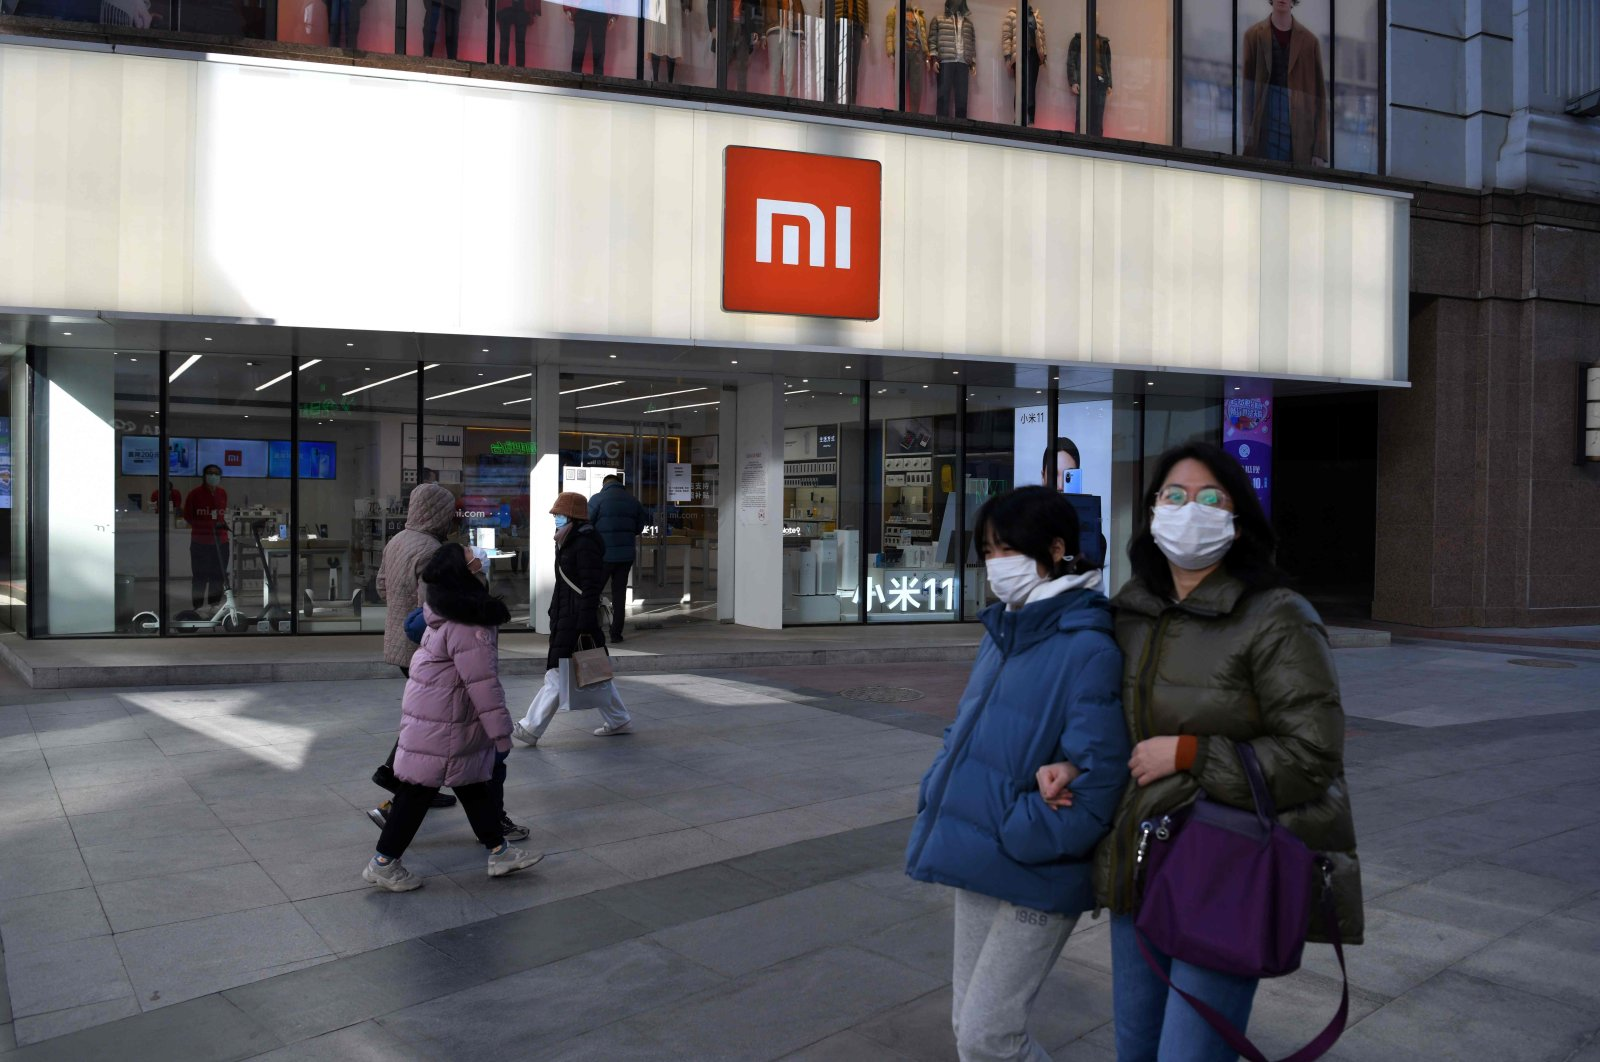 In this file photo, people walk past a Xiaomi store in Beijing, China, Jan. 15, 2021. (AFP Photo)